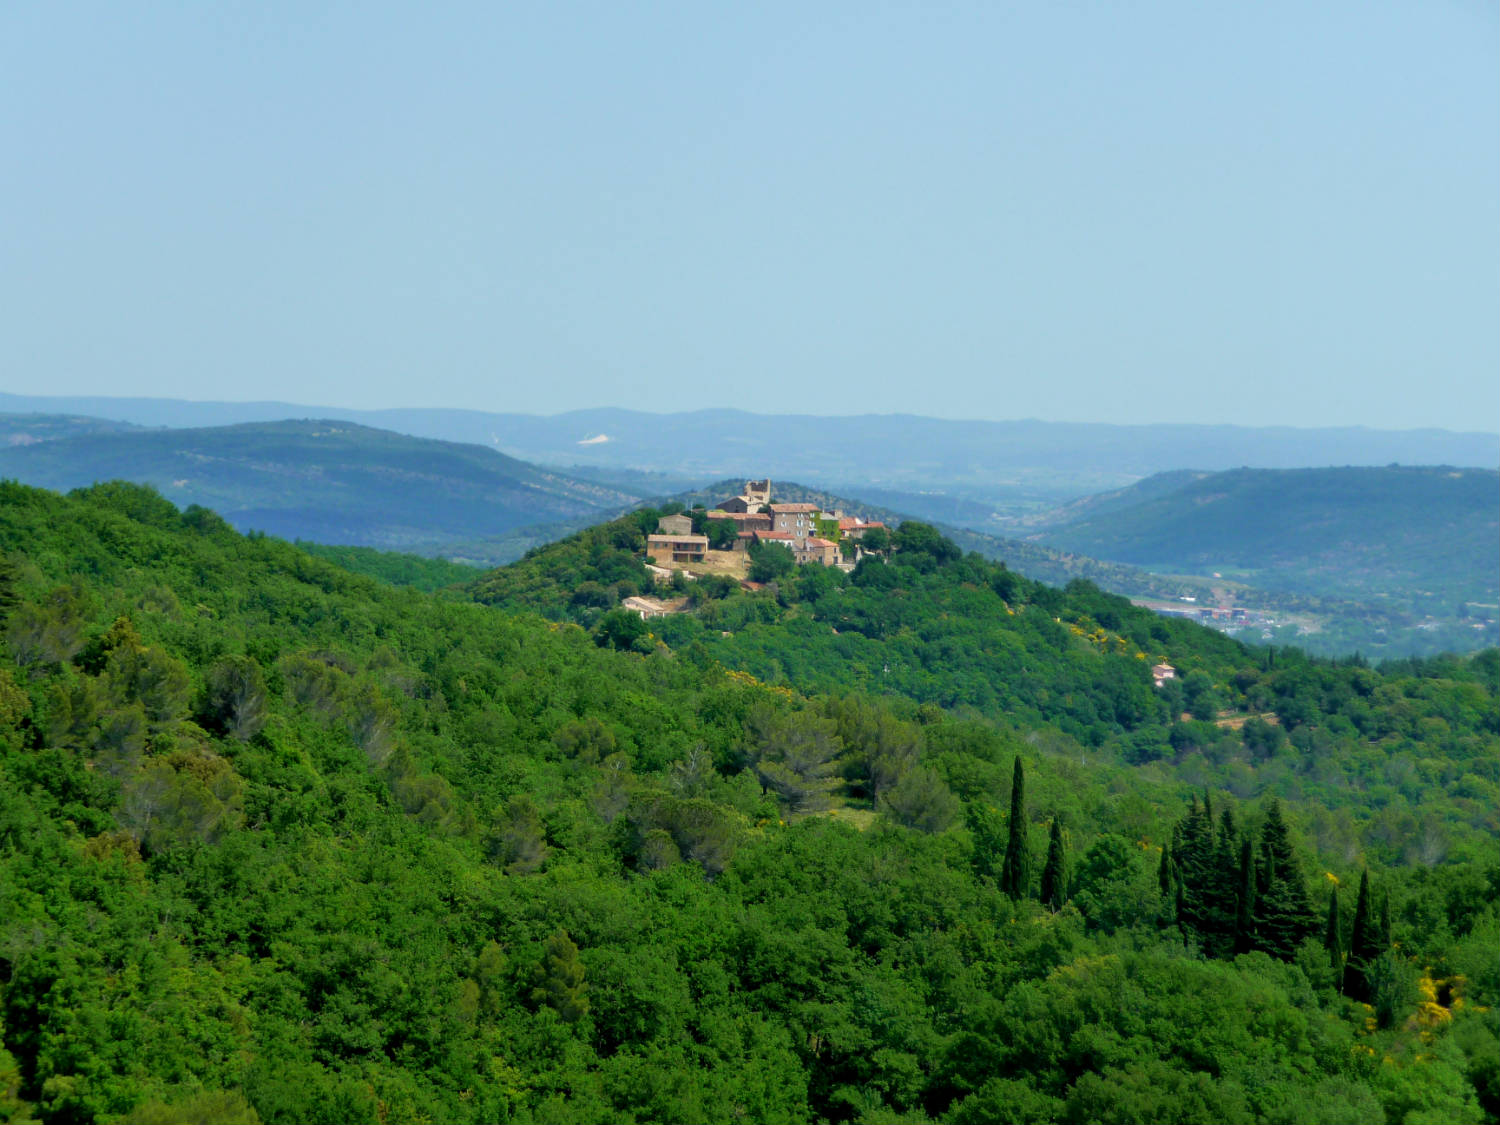 The hamlet of Olmet is located in some of the most picturesque countryside of France